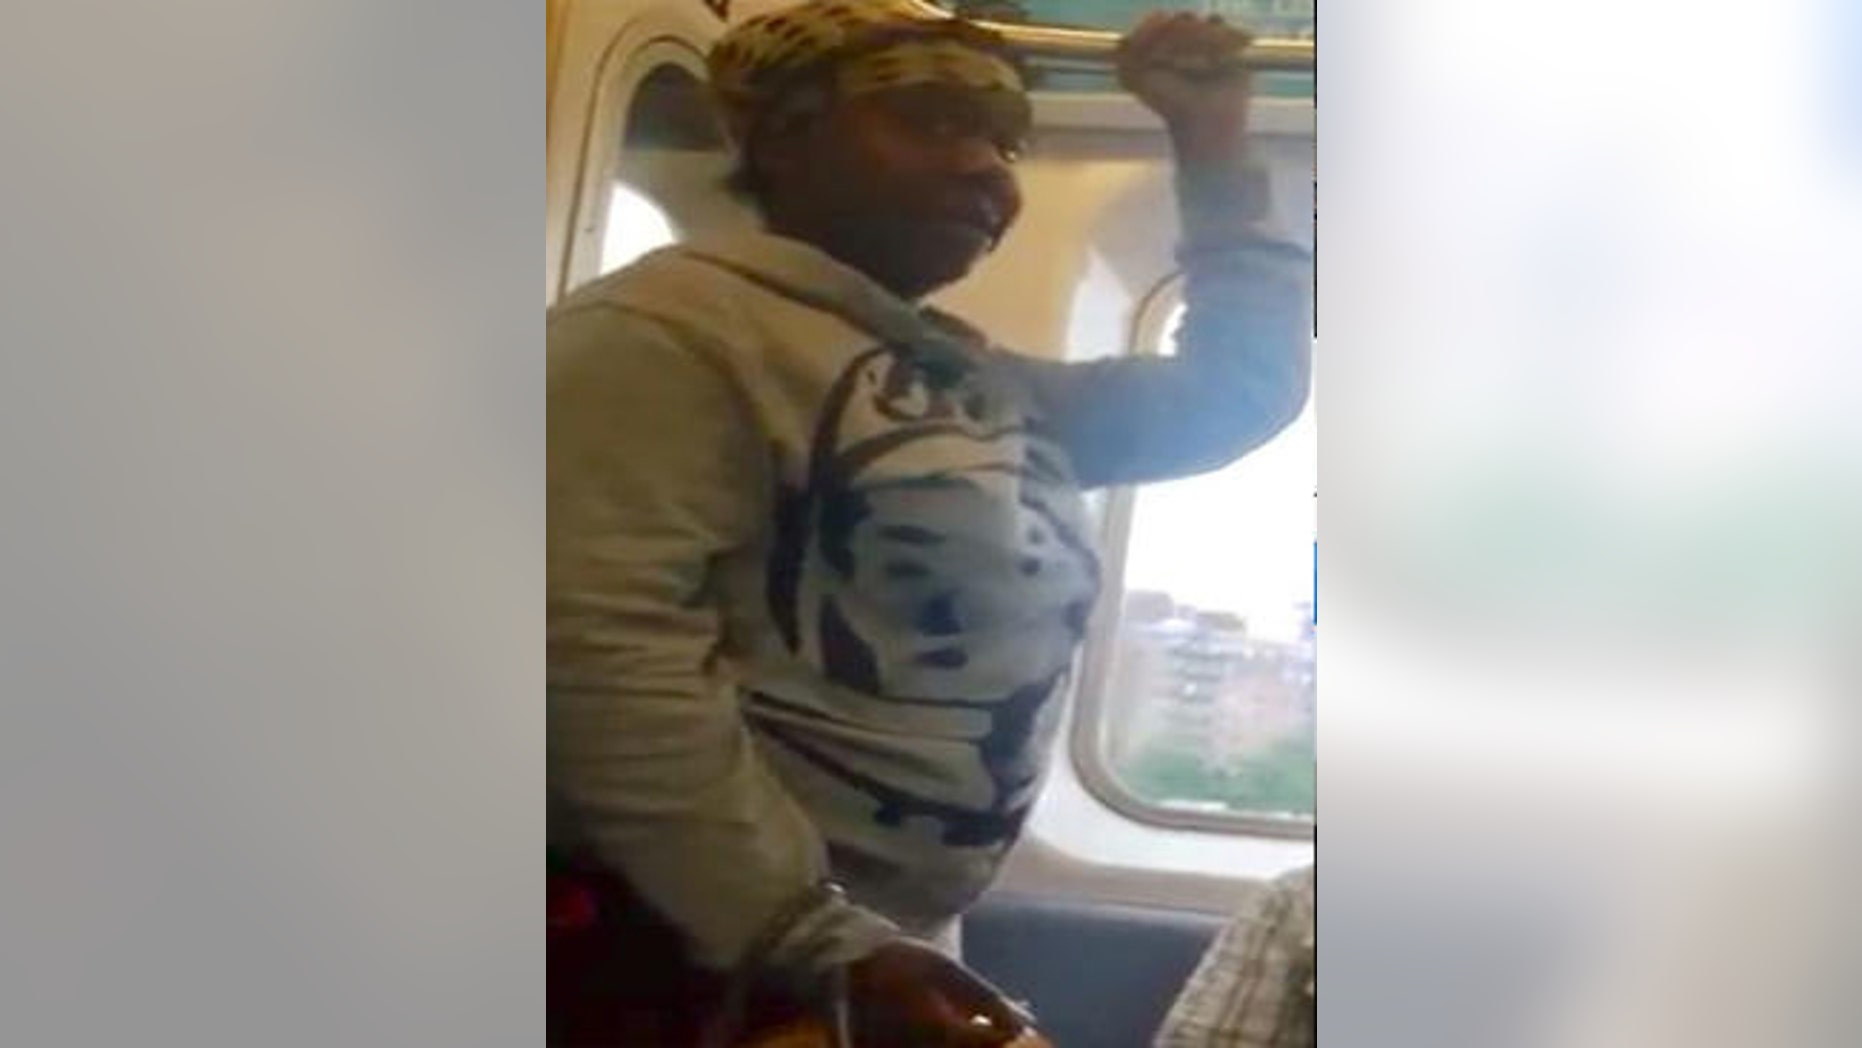 Police said this woman allegedly attacked another woman on the 4 Train in New York City.